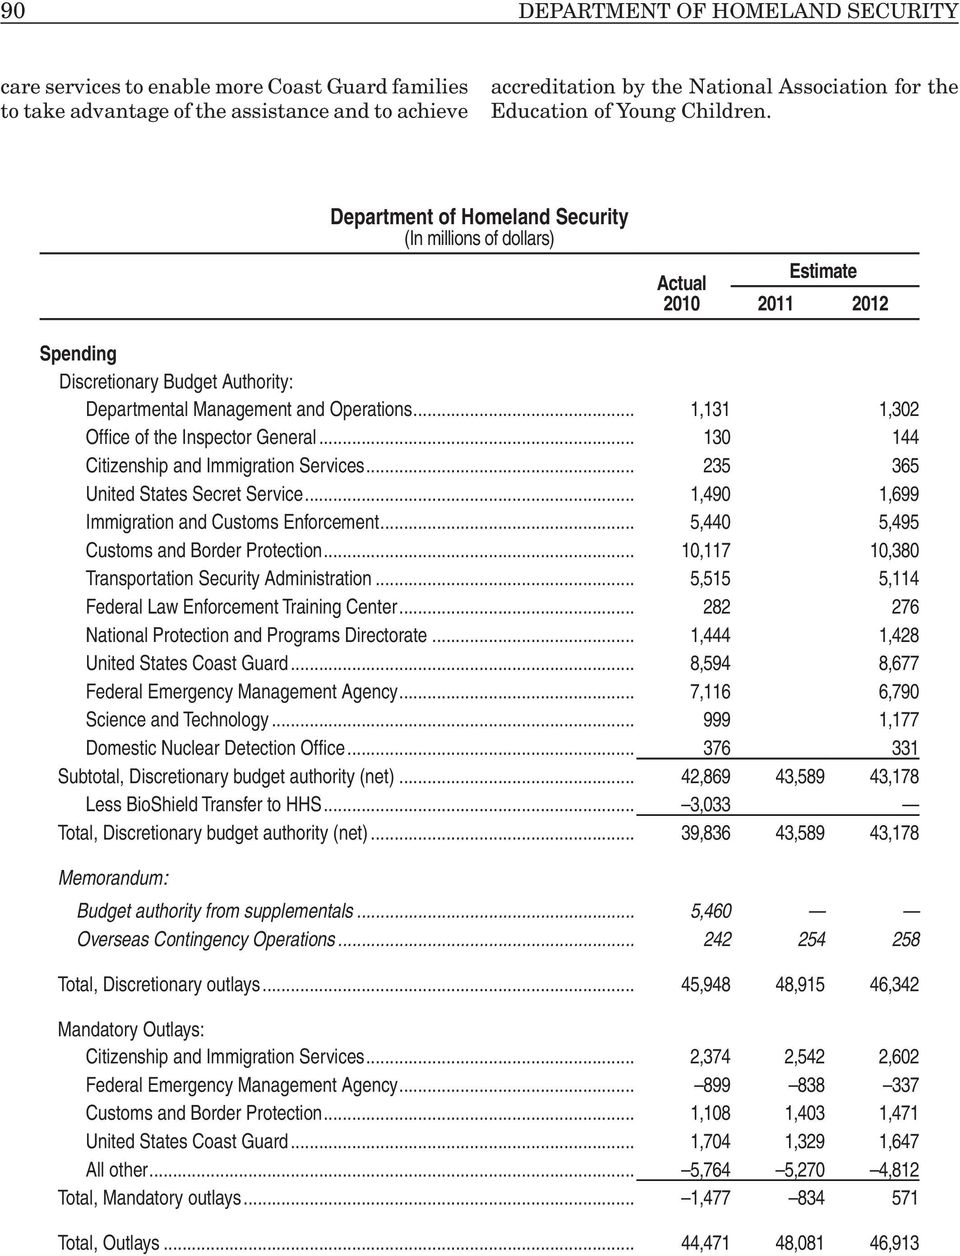 Department of Homeland Security (In millions of dollars) Actual 2010 Estimate 2011 2012 Spending Discretionary Budget Authority: Departmental Management and Operations 1,131 1,302 Office of the